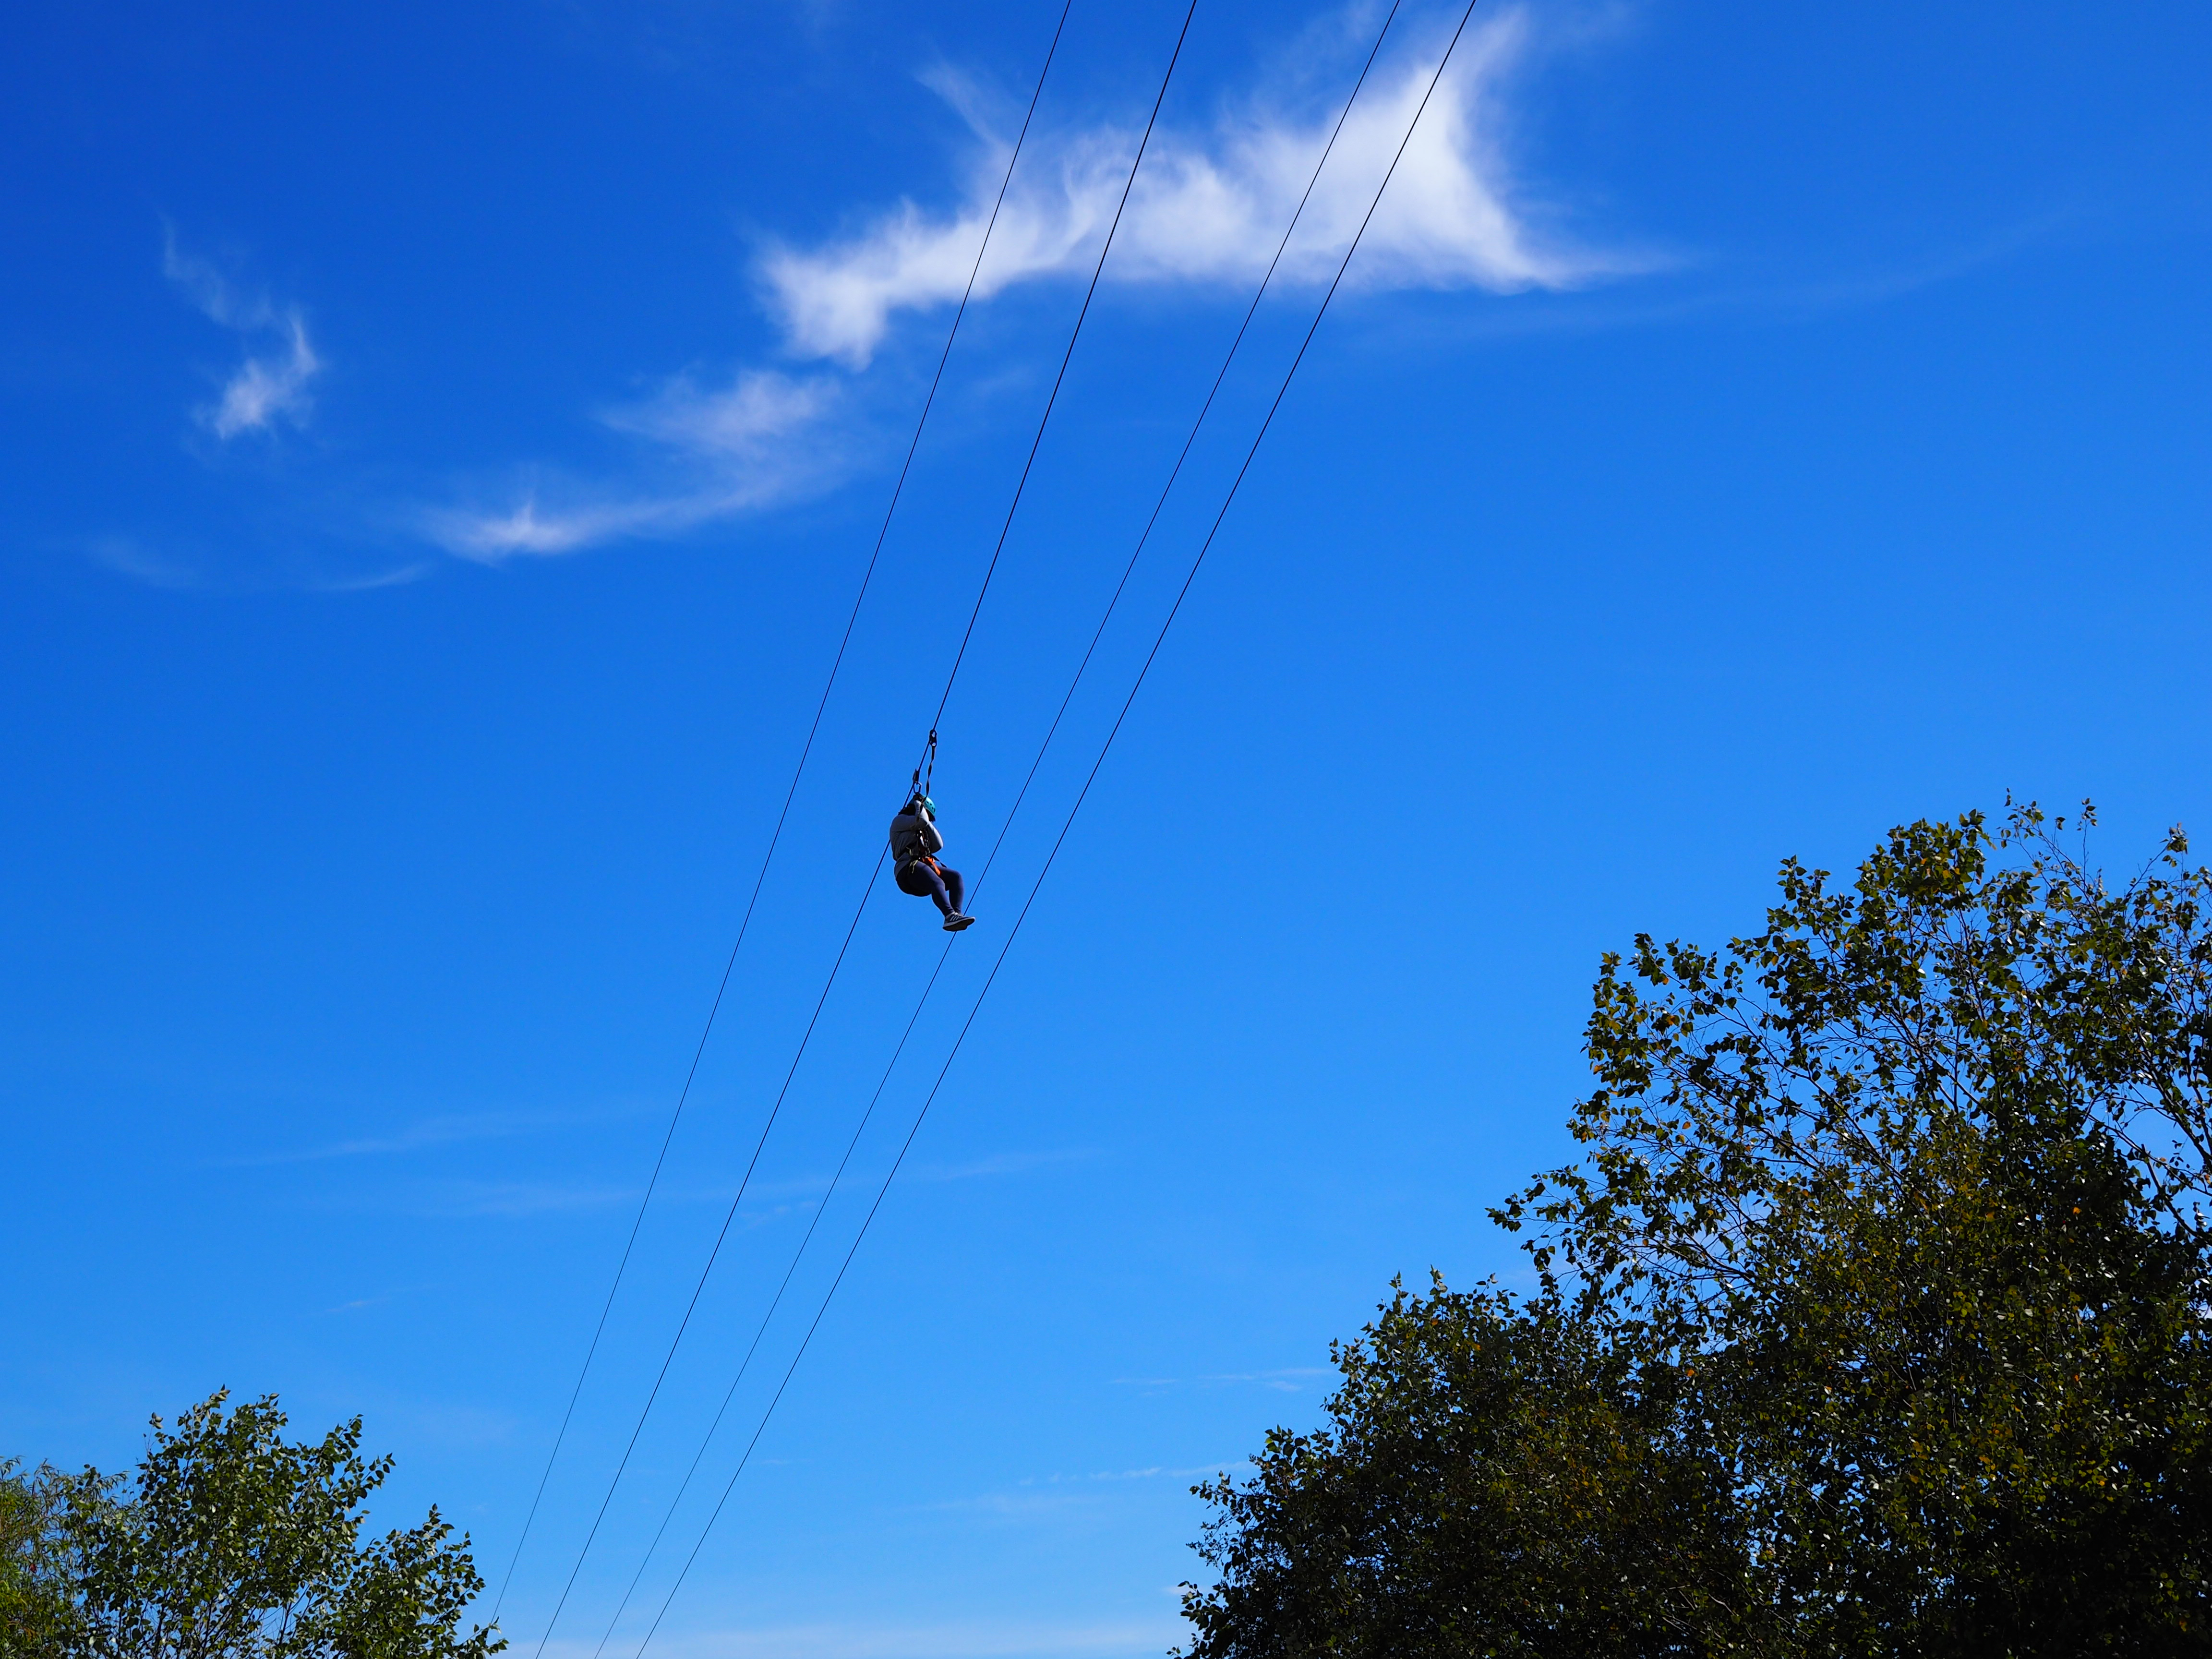 Blue Heron Adventure Zip Line & Aerial Course